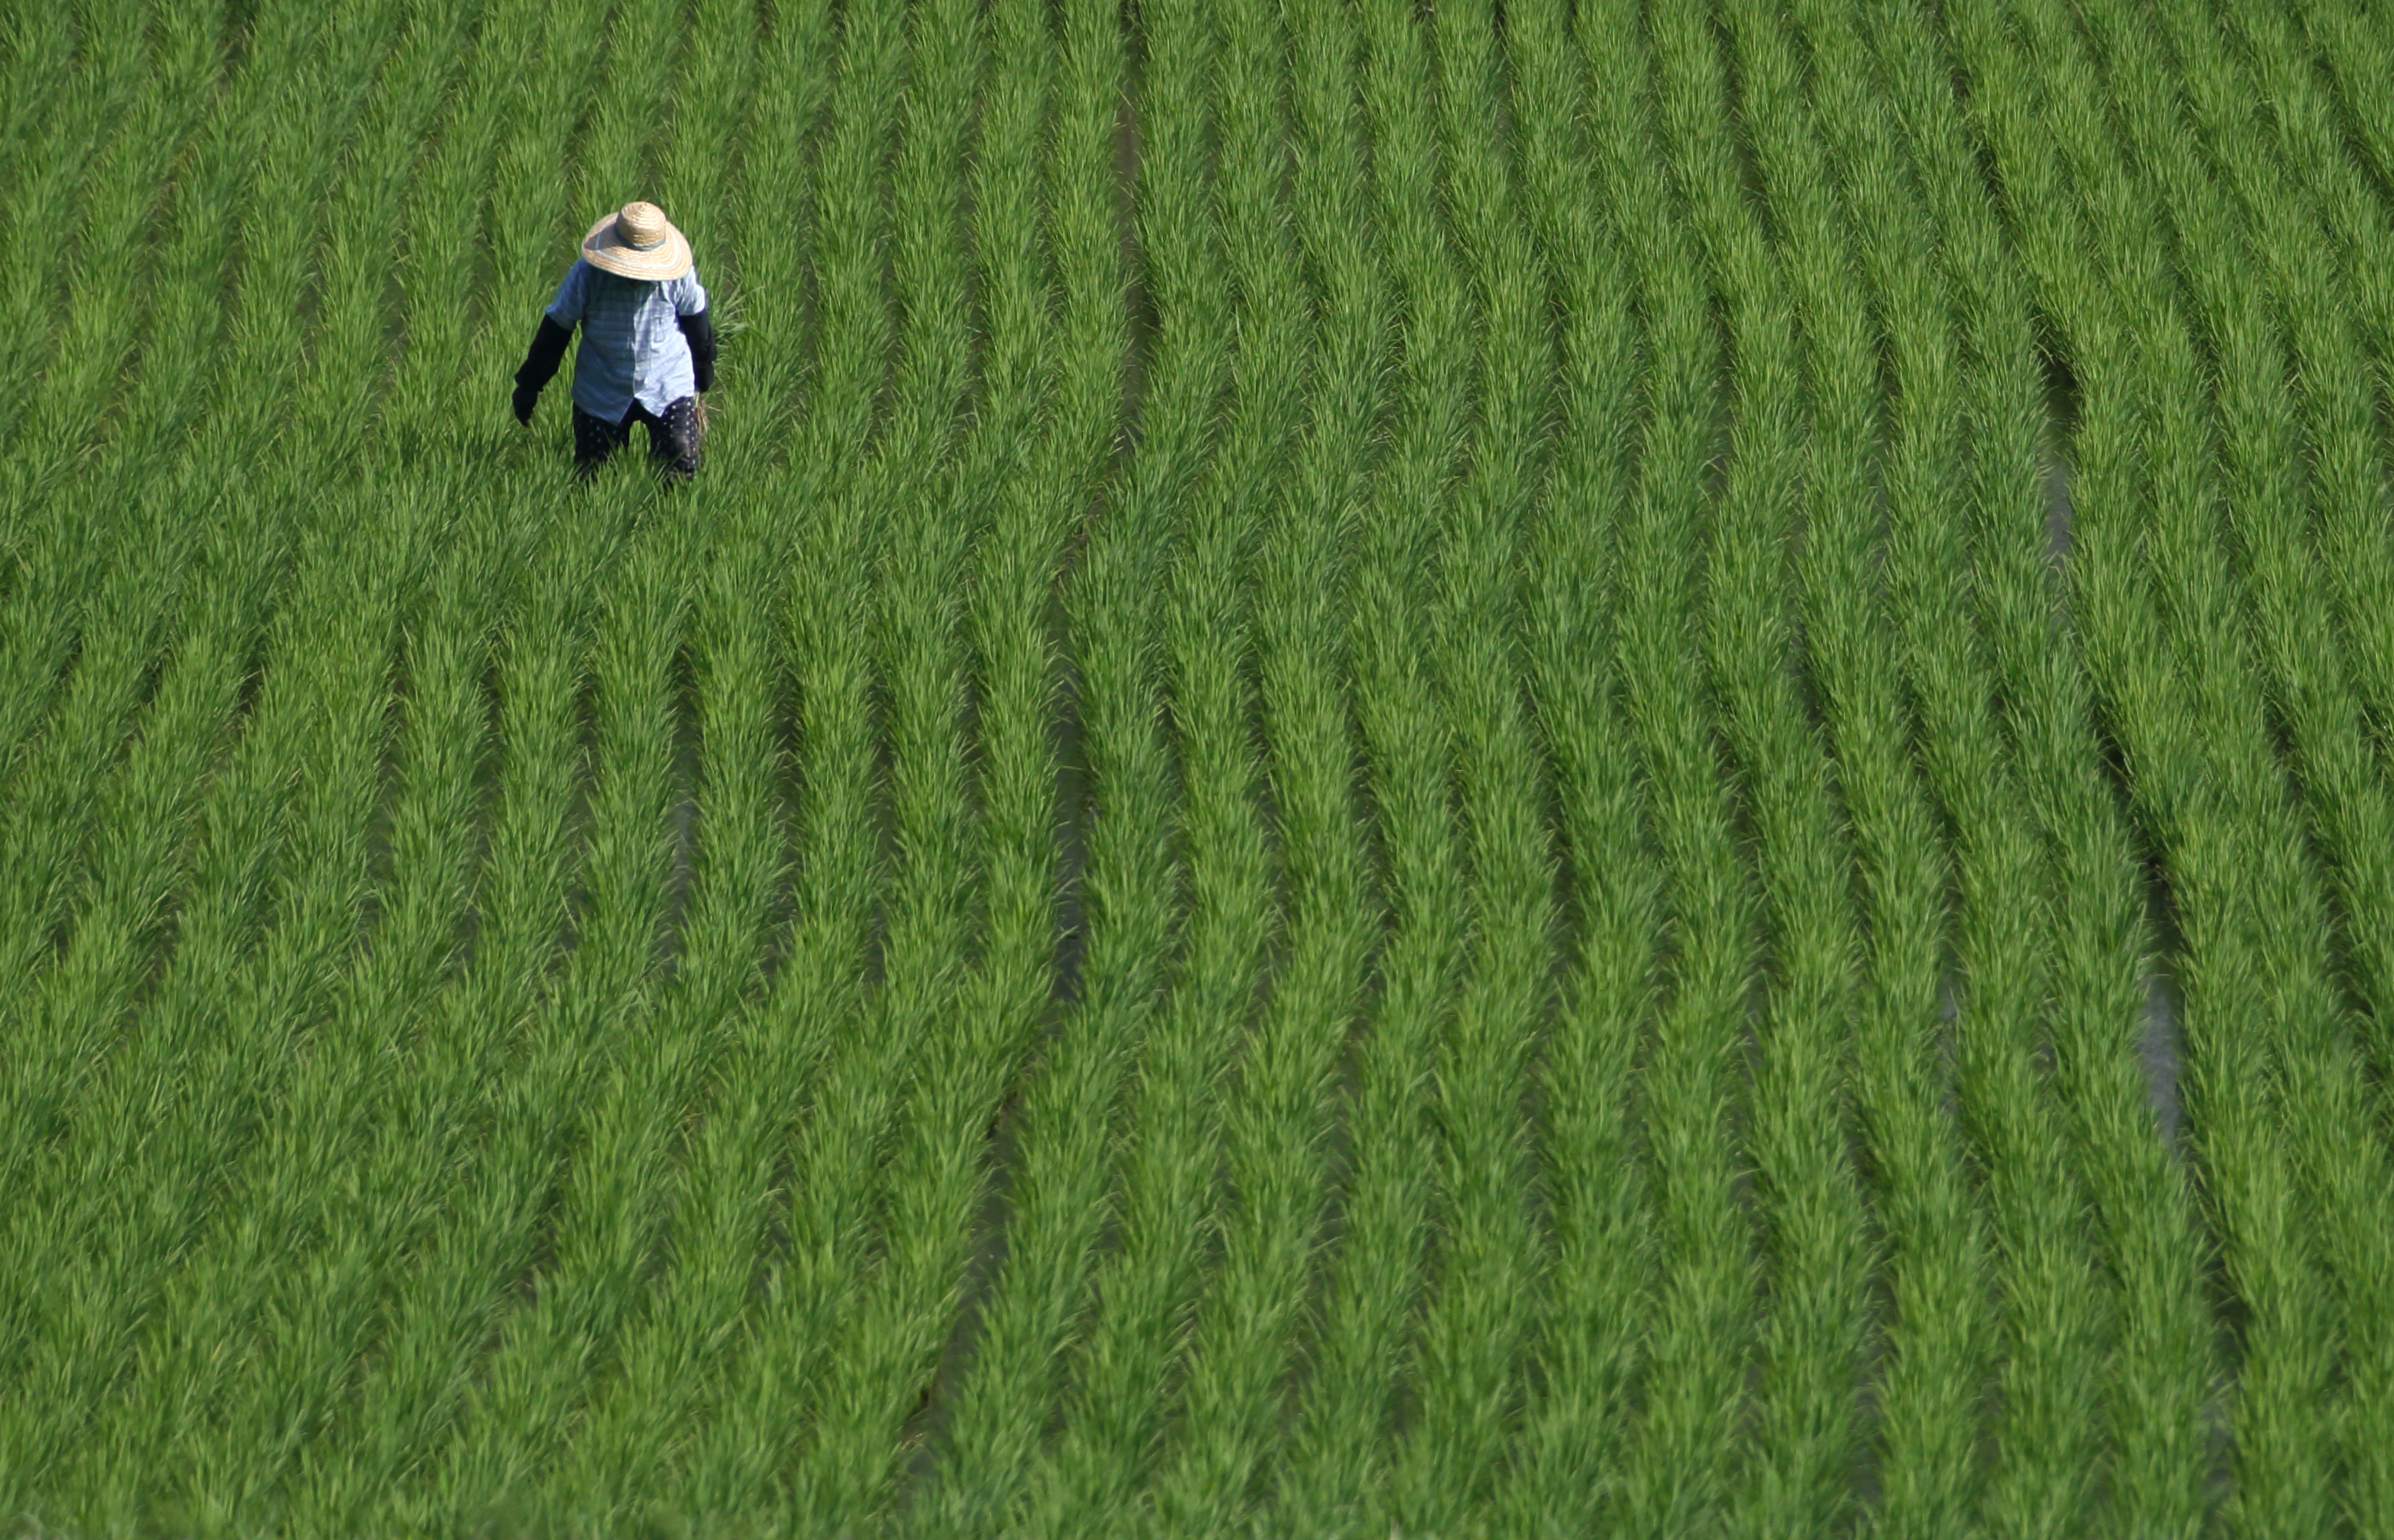 A rice farmer works in a paddy field in Yabu City, Hyogo Prefecture, Japan, on Wednesday, June 25, 2014.